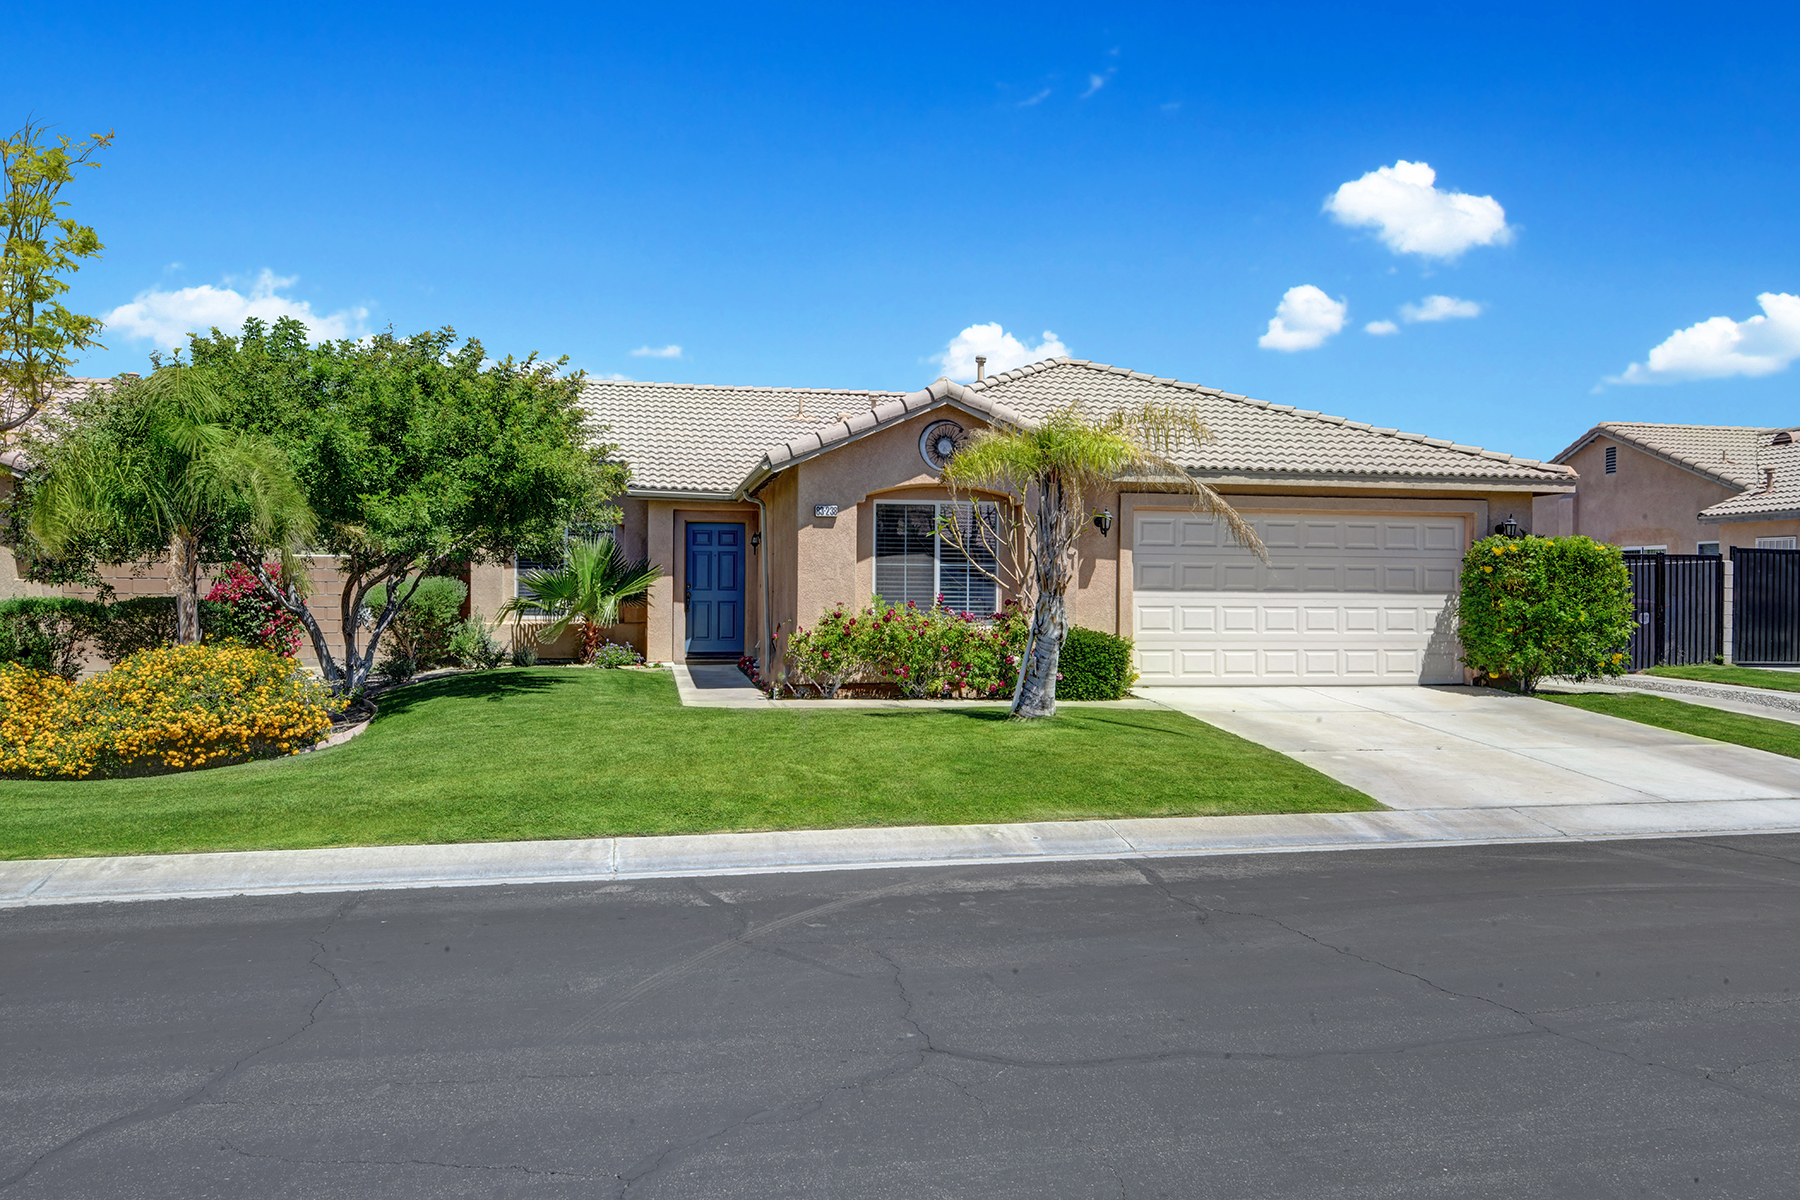 Single Family Homes for Active at 83238 Long Cove Drive Indio, California 92203 United States